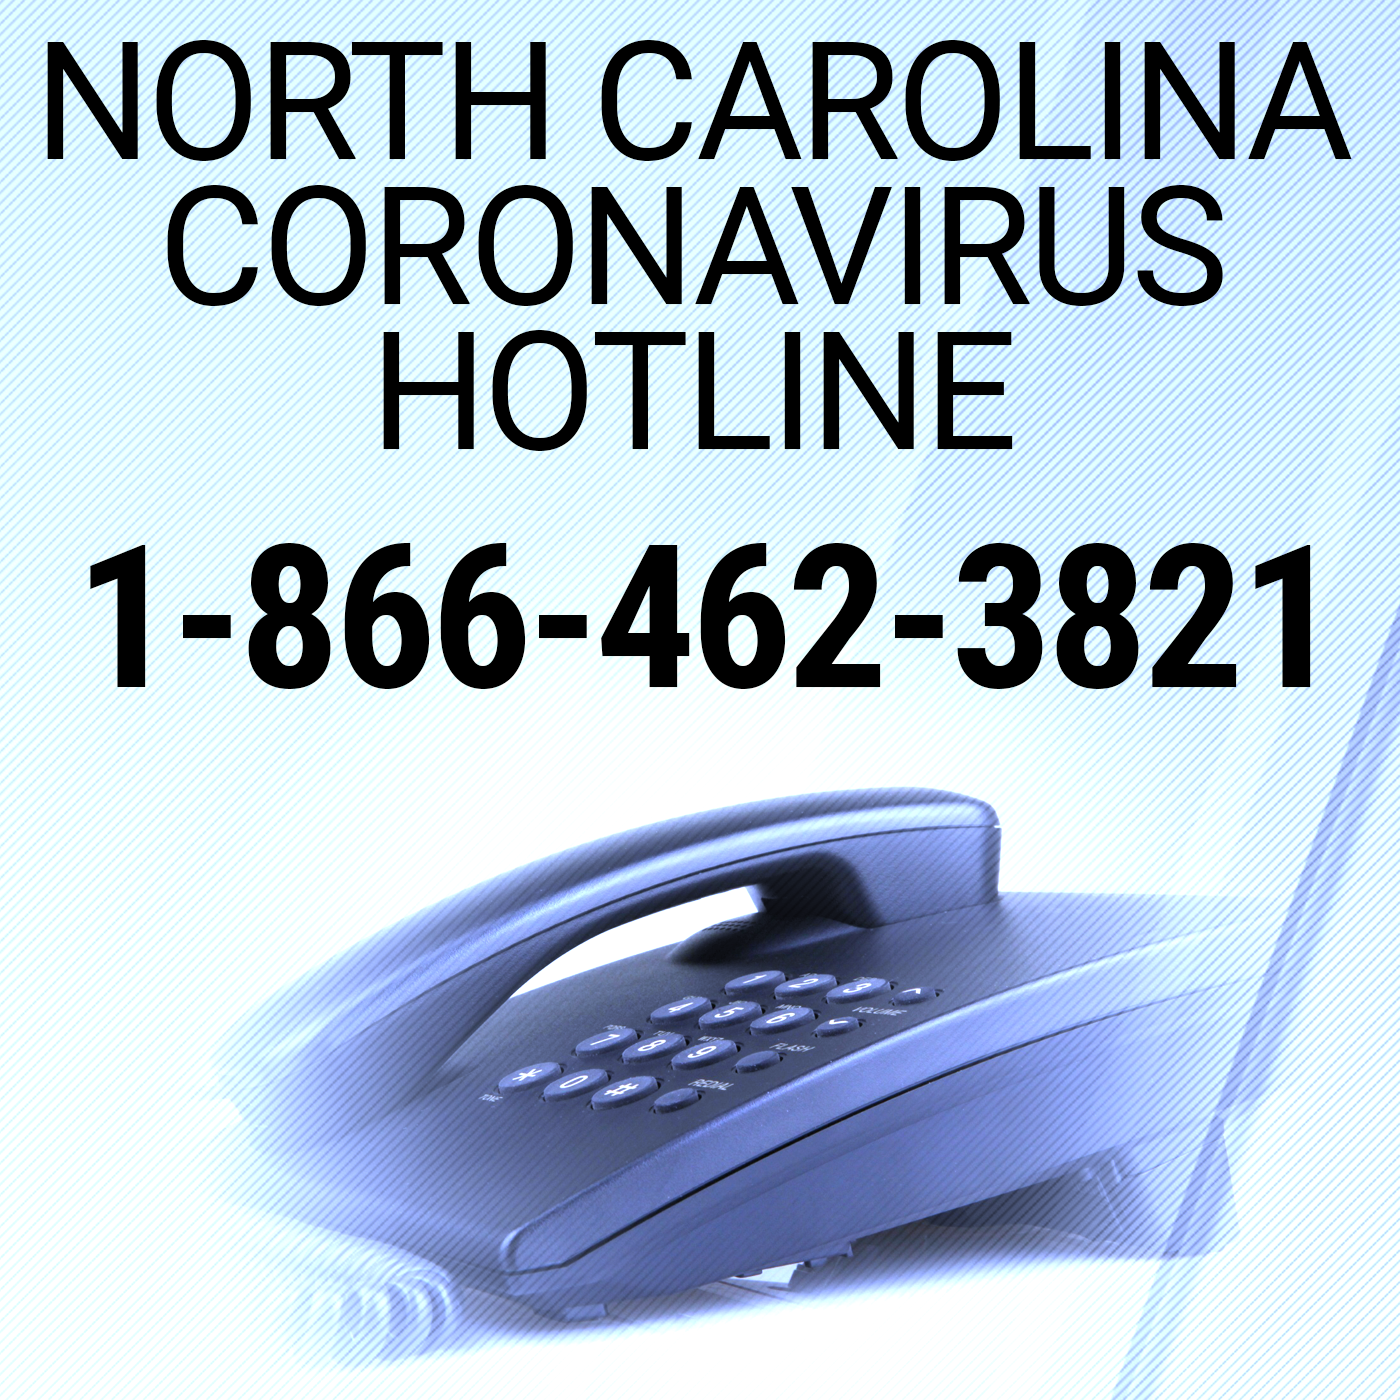 North Carolina Coronavirus Hotline: 1-866-462-3821